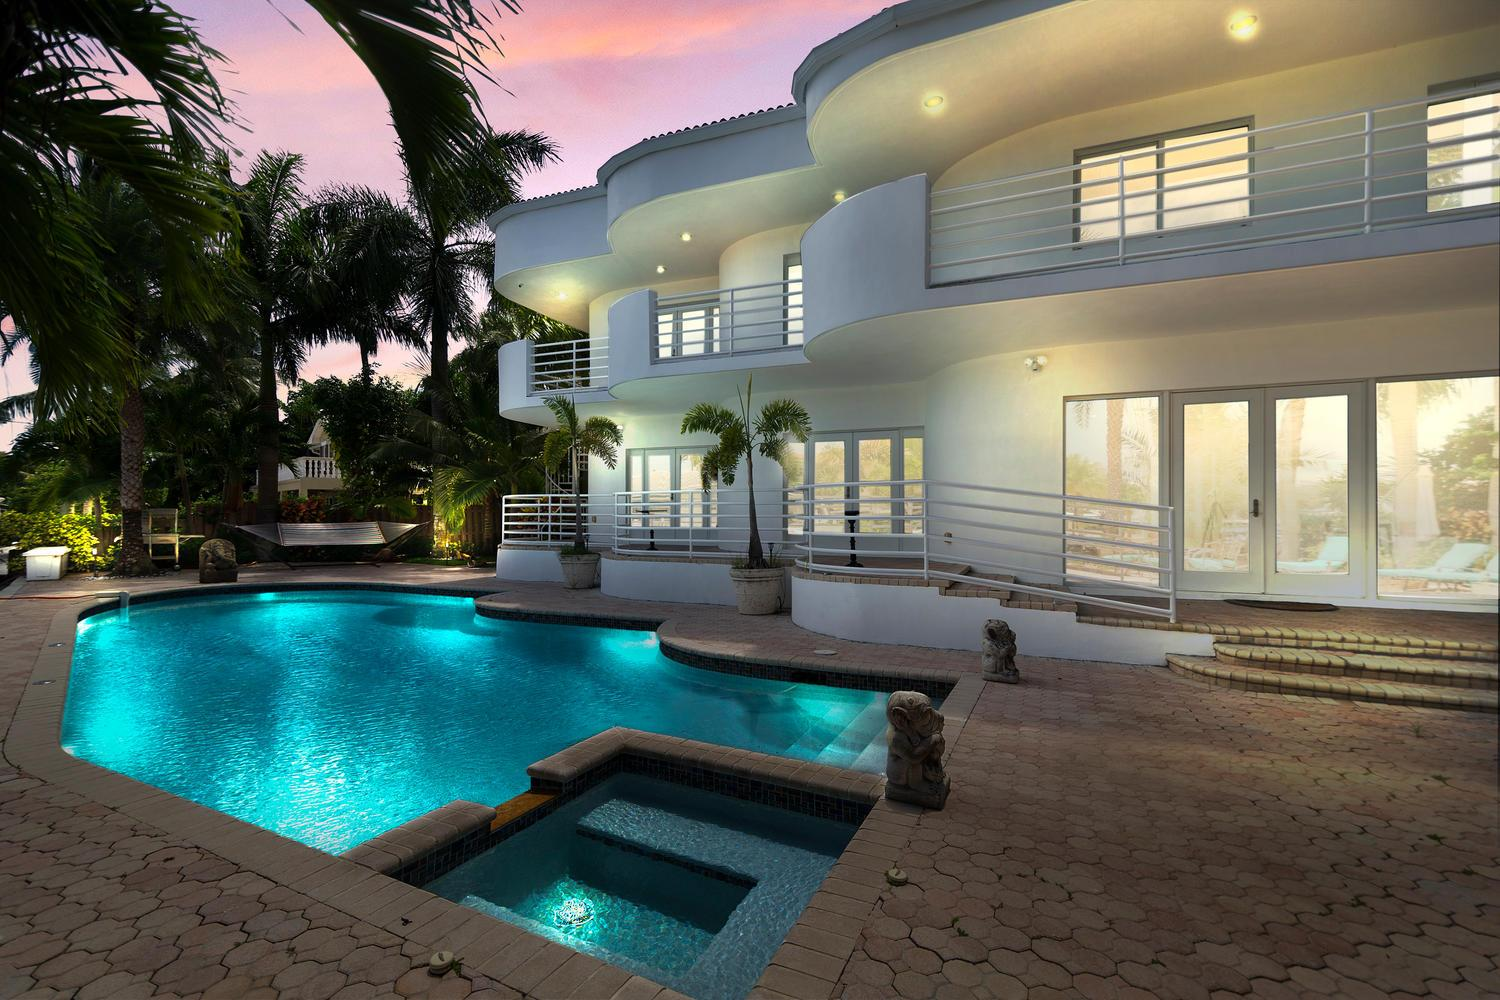 Welcome to Sunrise Key! This luxury home is professionally managed by TurnKey Vacation Rentals.